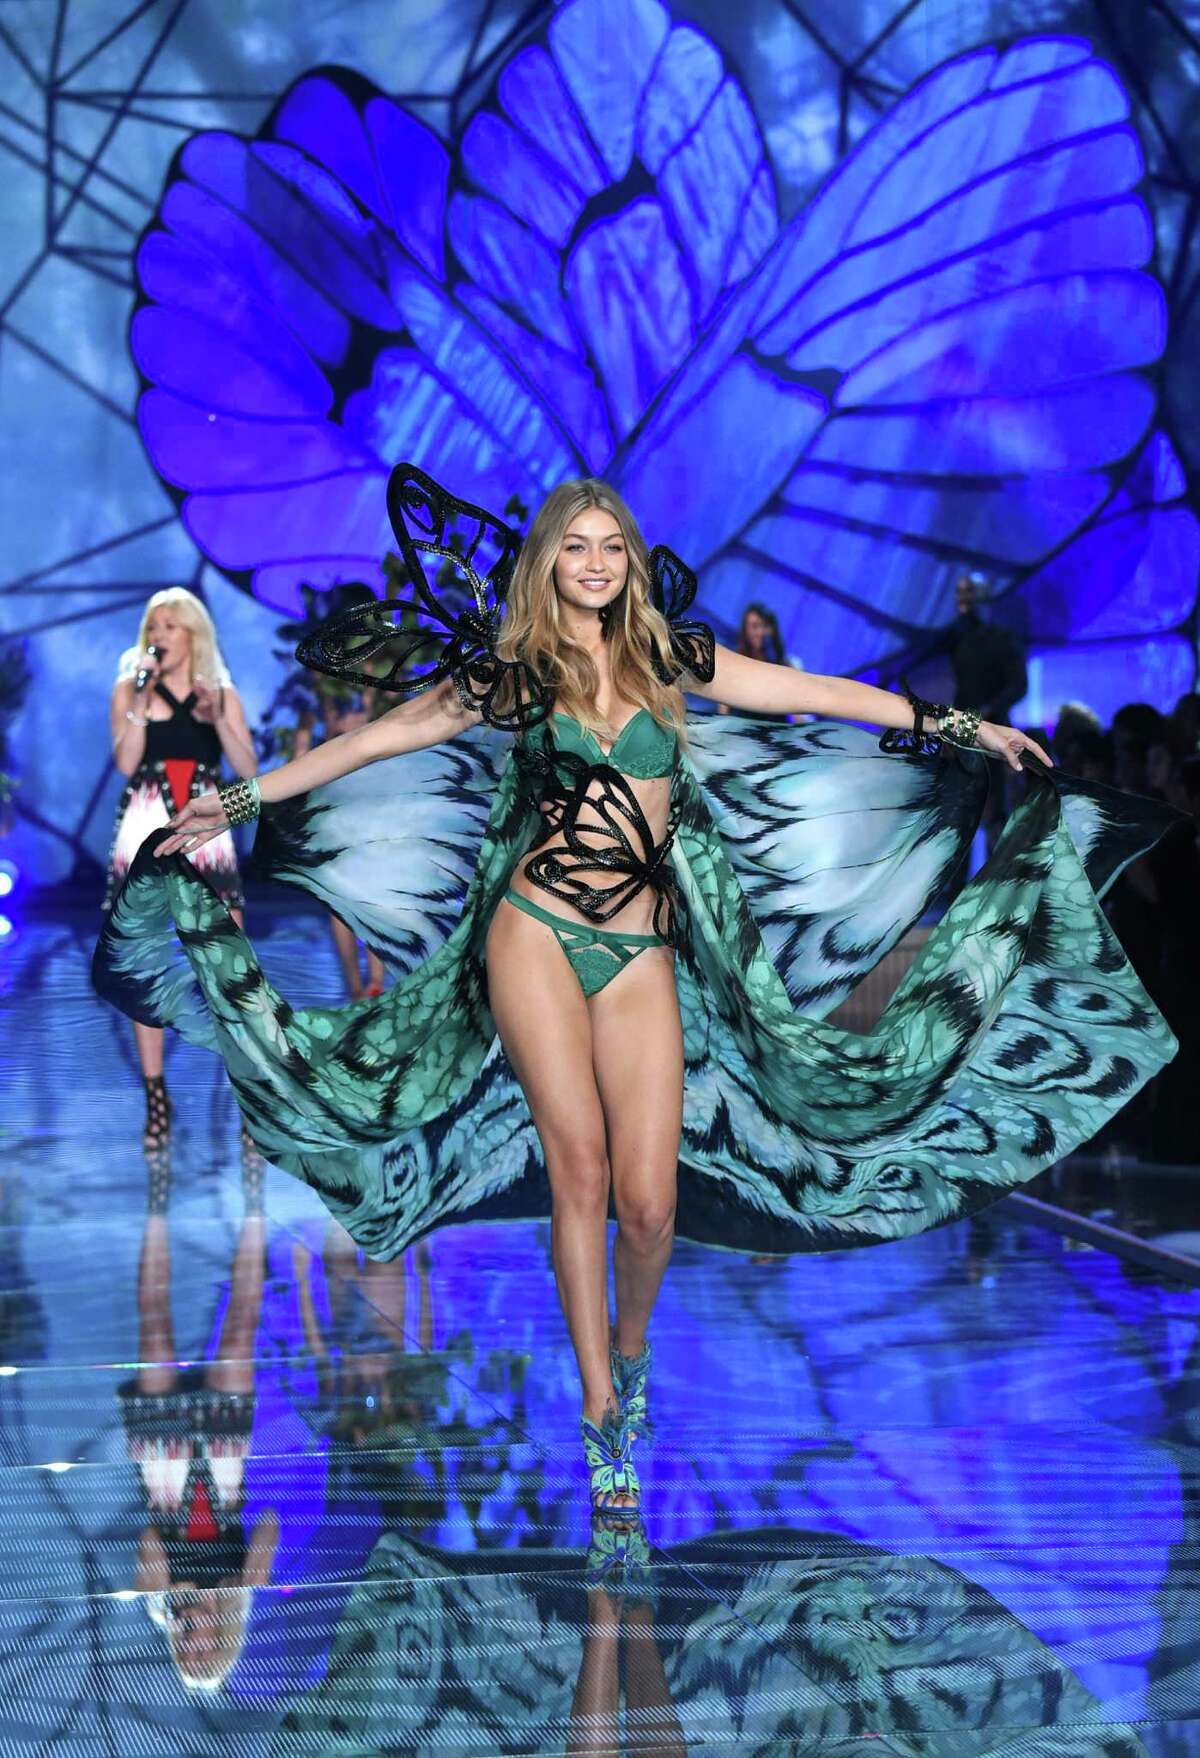 Gigi Hadid walks the runway as Ellie Goulding performs during the Victoria's Secret Fashion Show at the Lexington Armory on Tuesday, Nov. 10, 2015, in New York. The Victoria's Secret Fashion Show will air on CBS on Tuesday, Dec. 8, at 10pm EST. (Photo by Evan Agostini/Invision/AP)